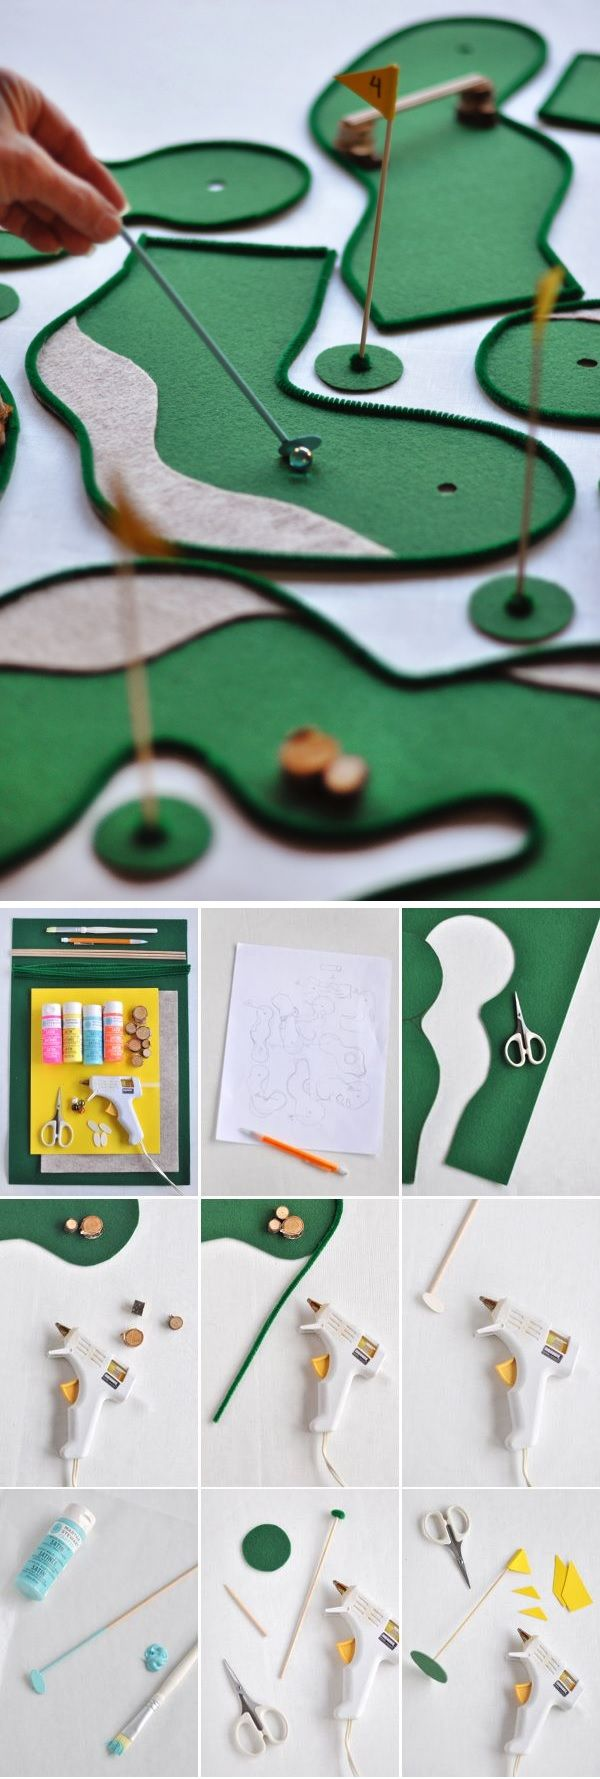 The 25 Best Mini Golf Games Ideas On Pinterest Putt Putt Near Me Golf Games For Kids And